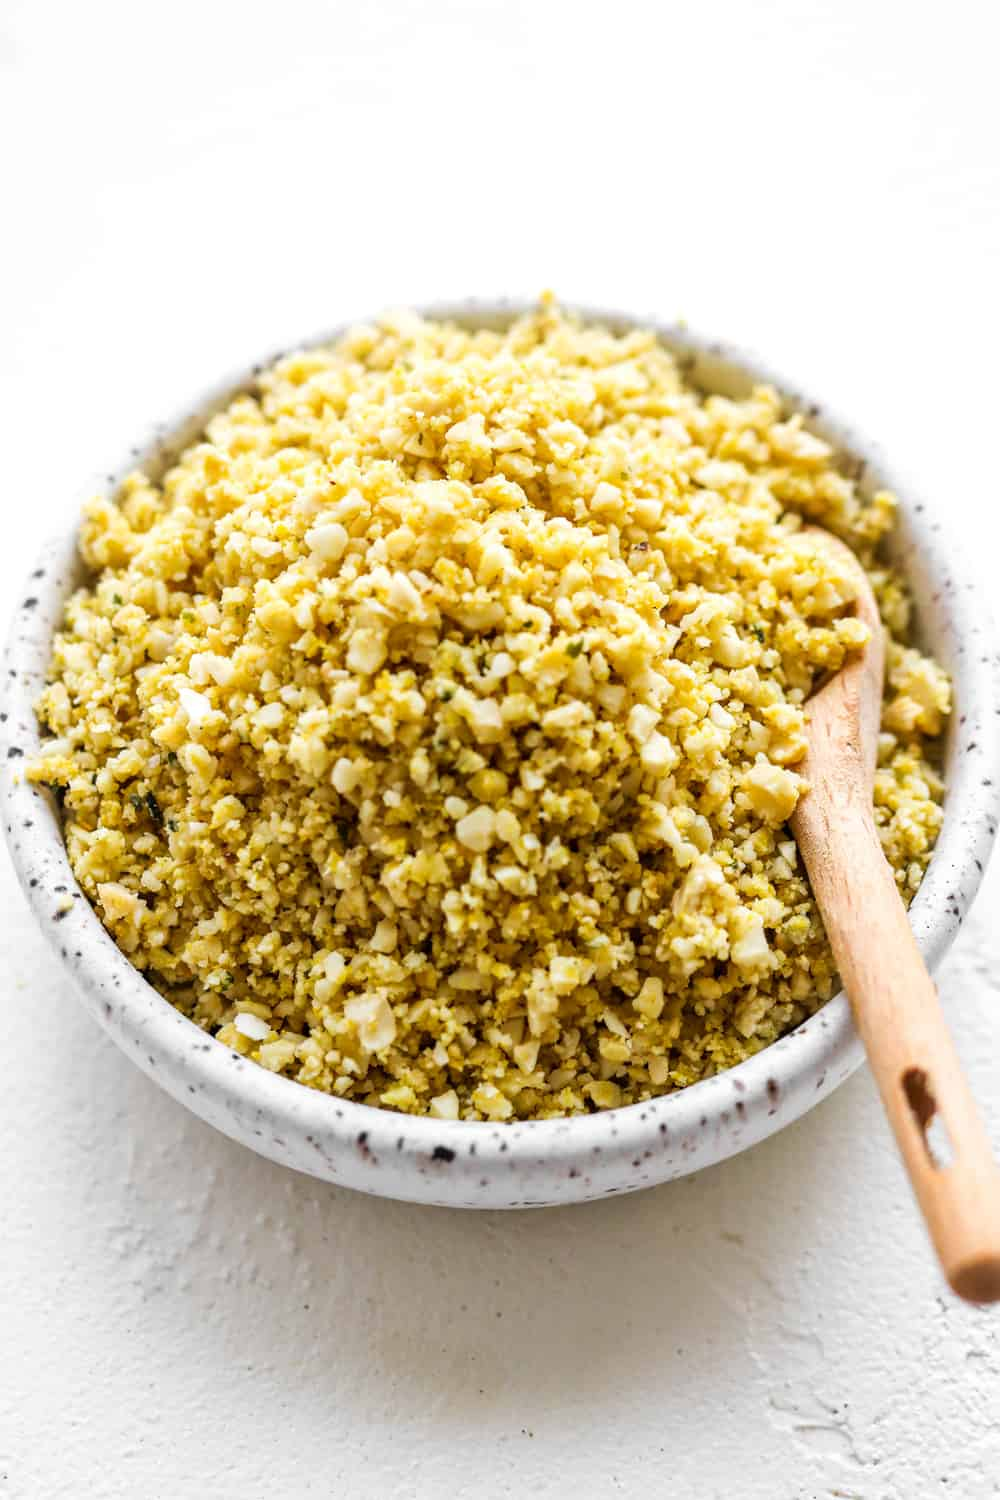 Round white specked bowl filled with nut and seed parmesan cheese with a small wooded spoon in it.